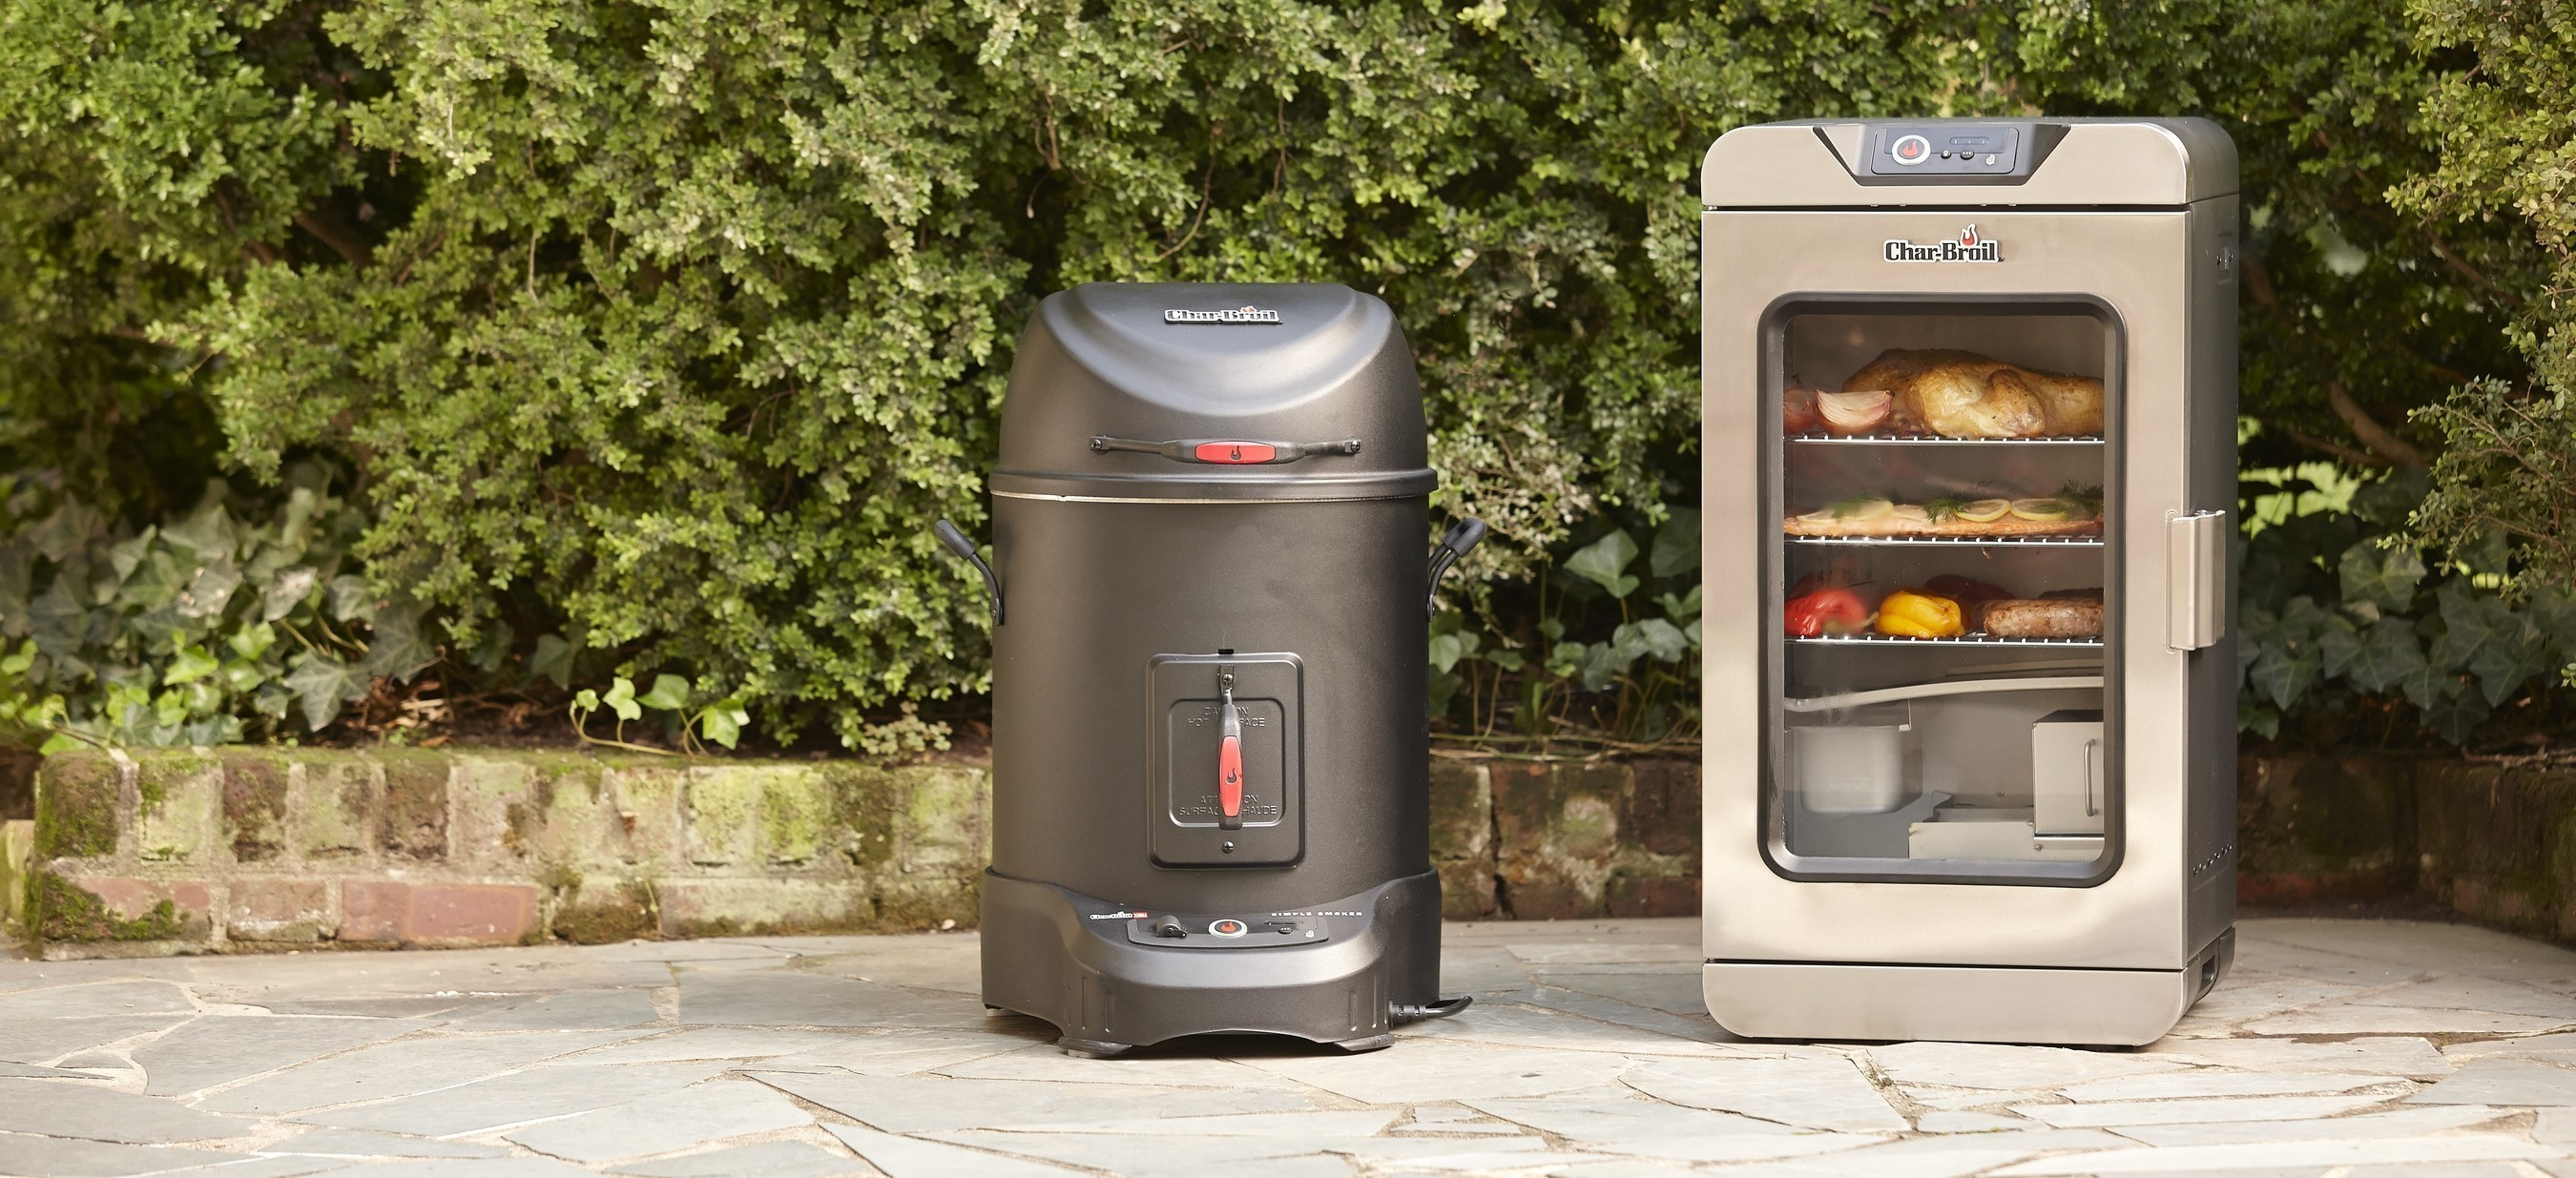 The first of their kind, the Simple Smoker ($299) and Digital Electric Smoker ($399) sync to your smart device over Wi-Fi utilizing the Char-Broil app, which allows connected users more convenience and freedom than ever before. Users of all skill levels will have an outdoor cooking experience that is all about leveraging innovative technology to consistently create superior taste, perfect cooking techniques and enjoy an effortless smoking routine.